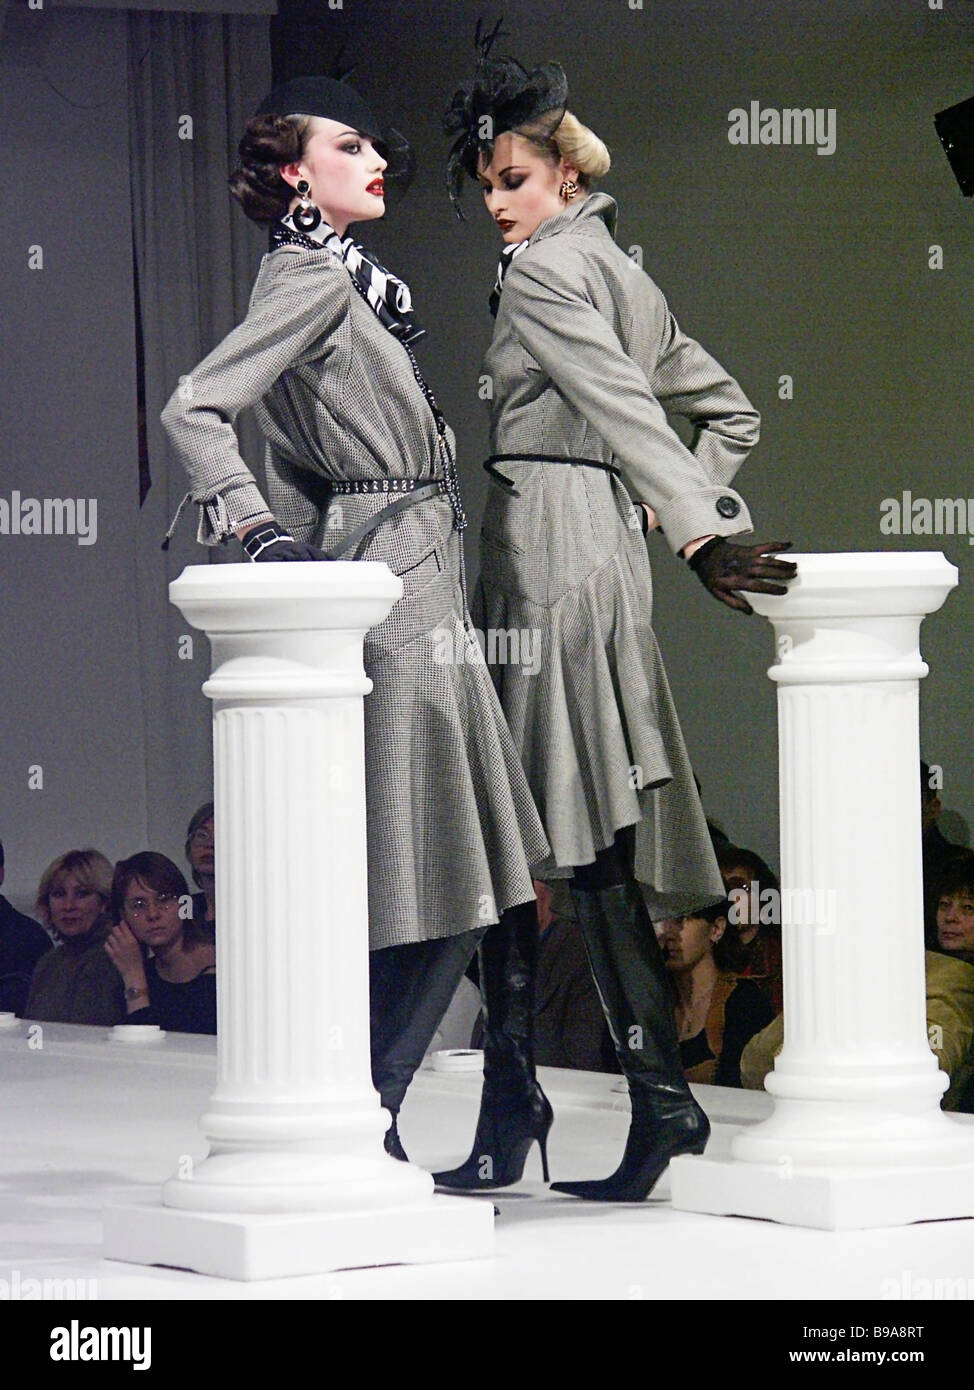 New Collection Pret A Porter 2004 By Russian Fashion Designer Stock Photo Alamy